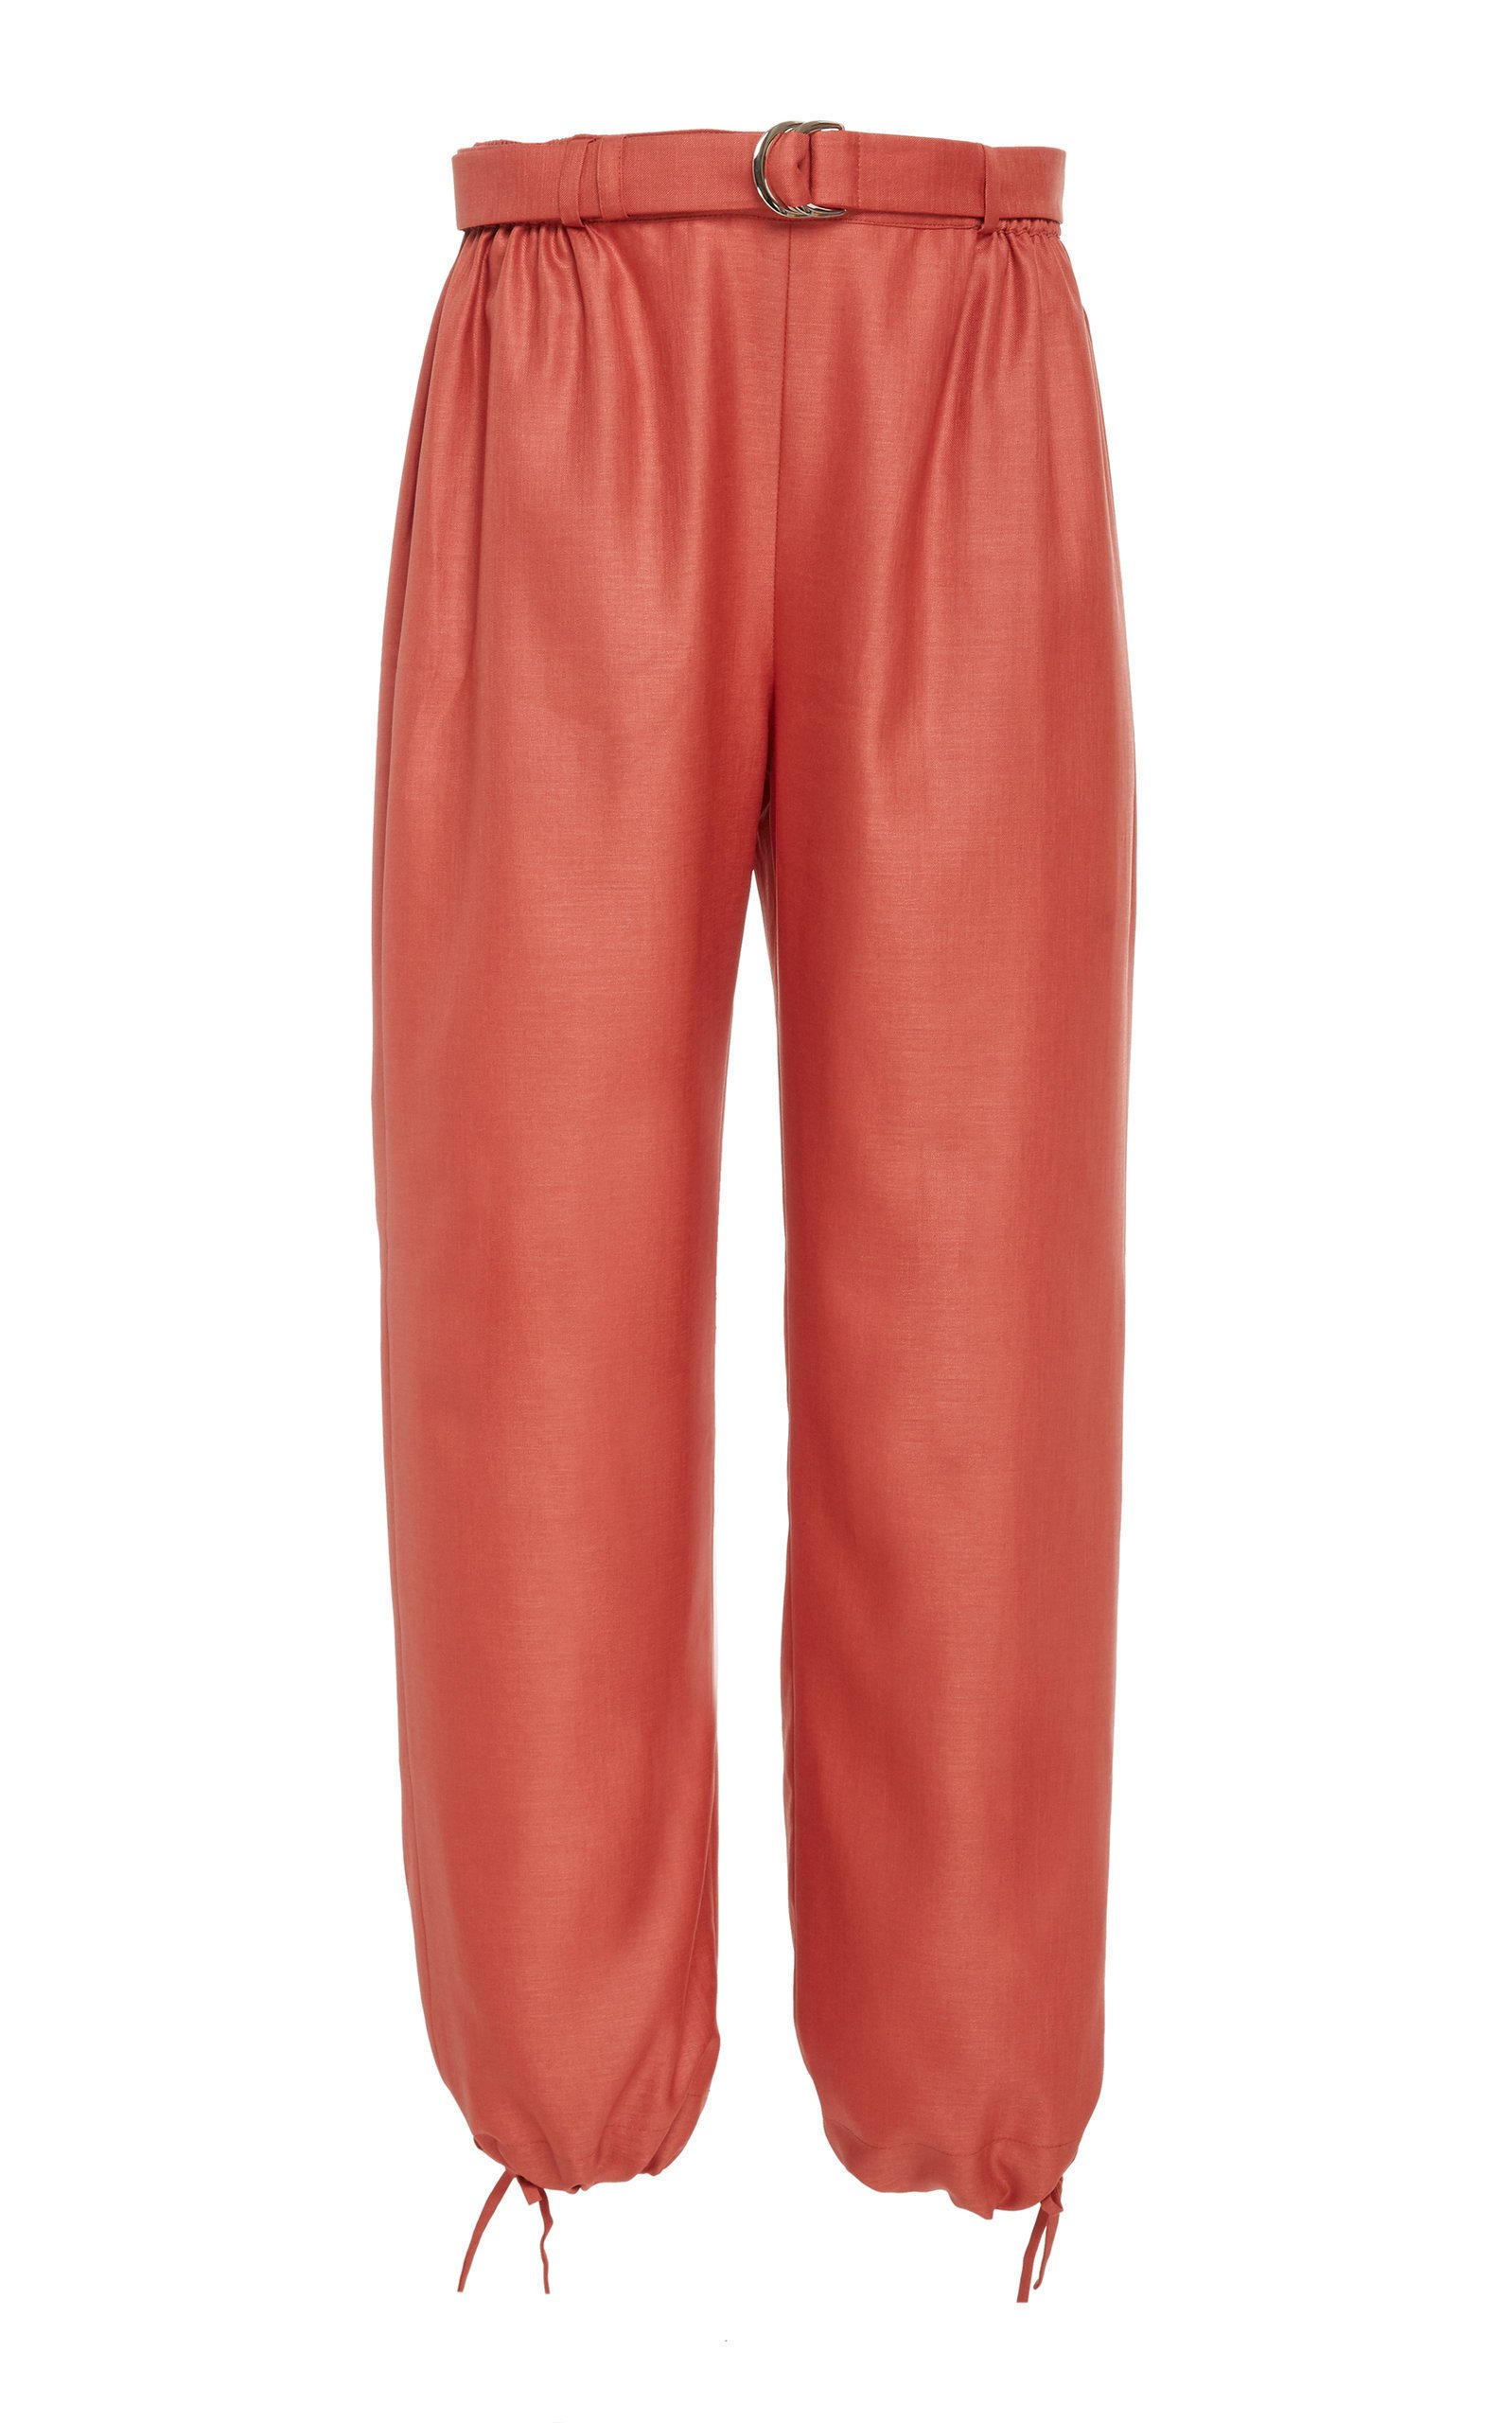 Bouguessa Loose Tie-Up Pants Size: S